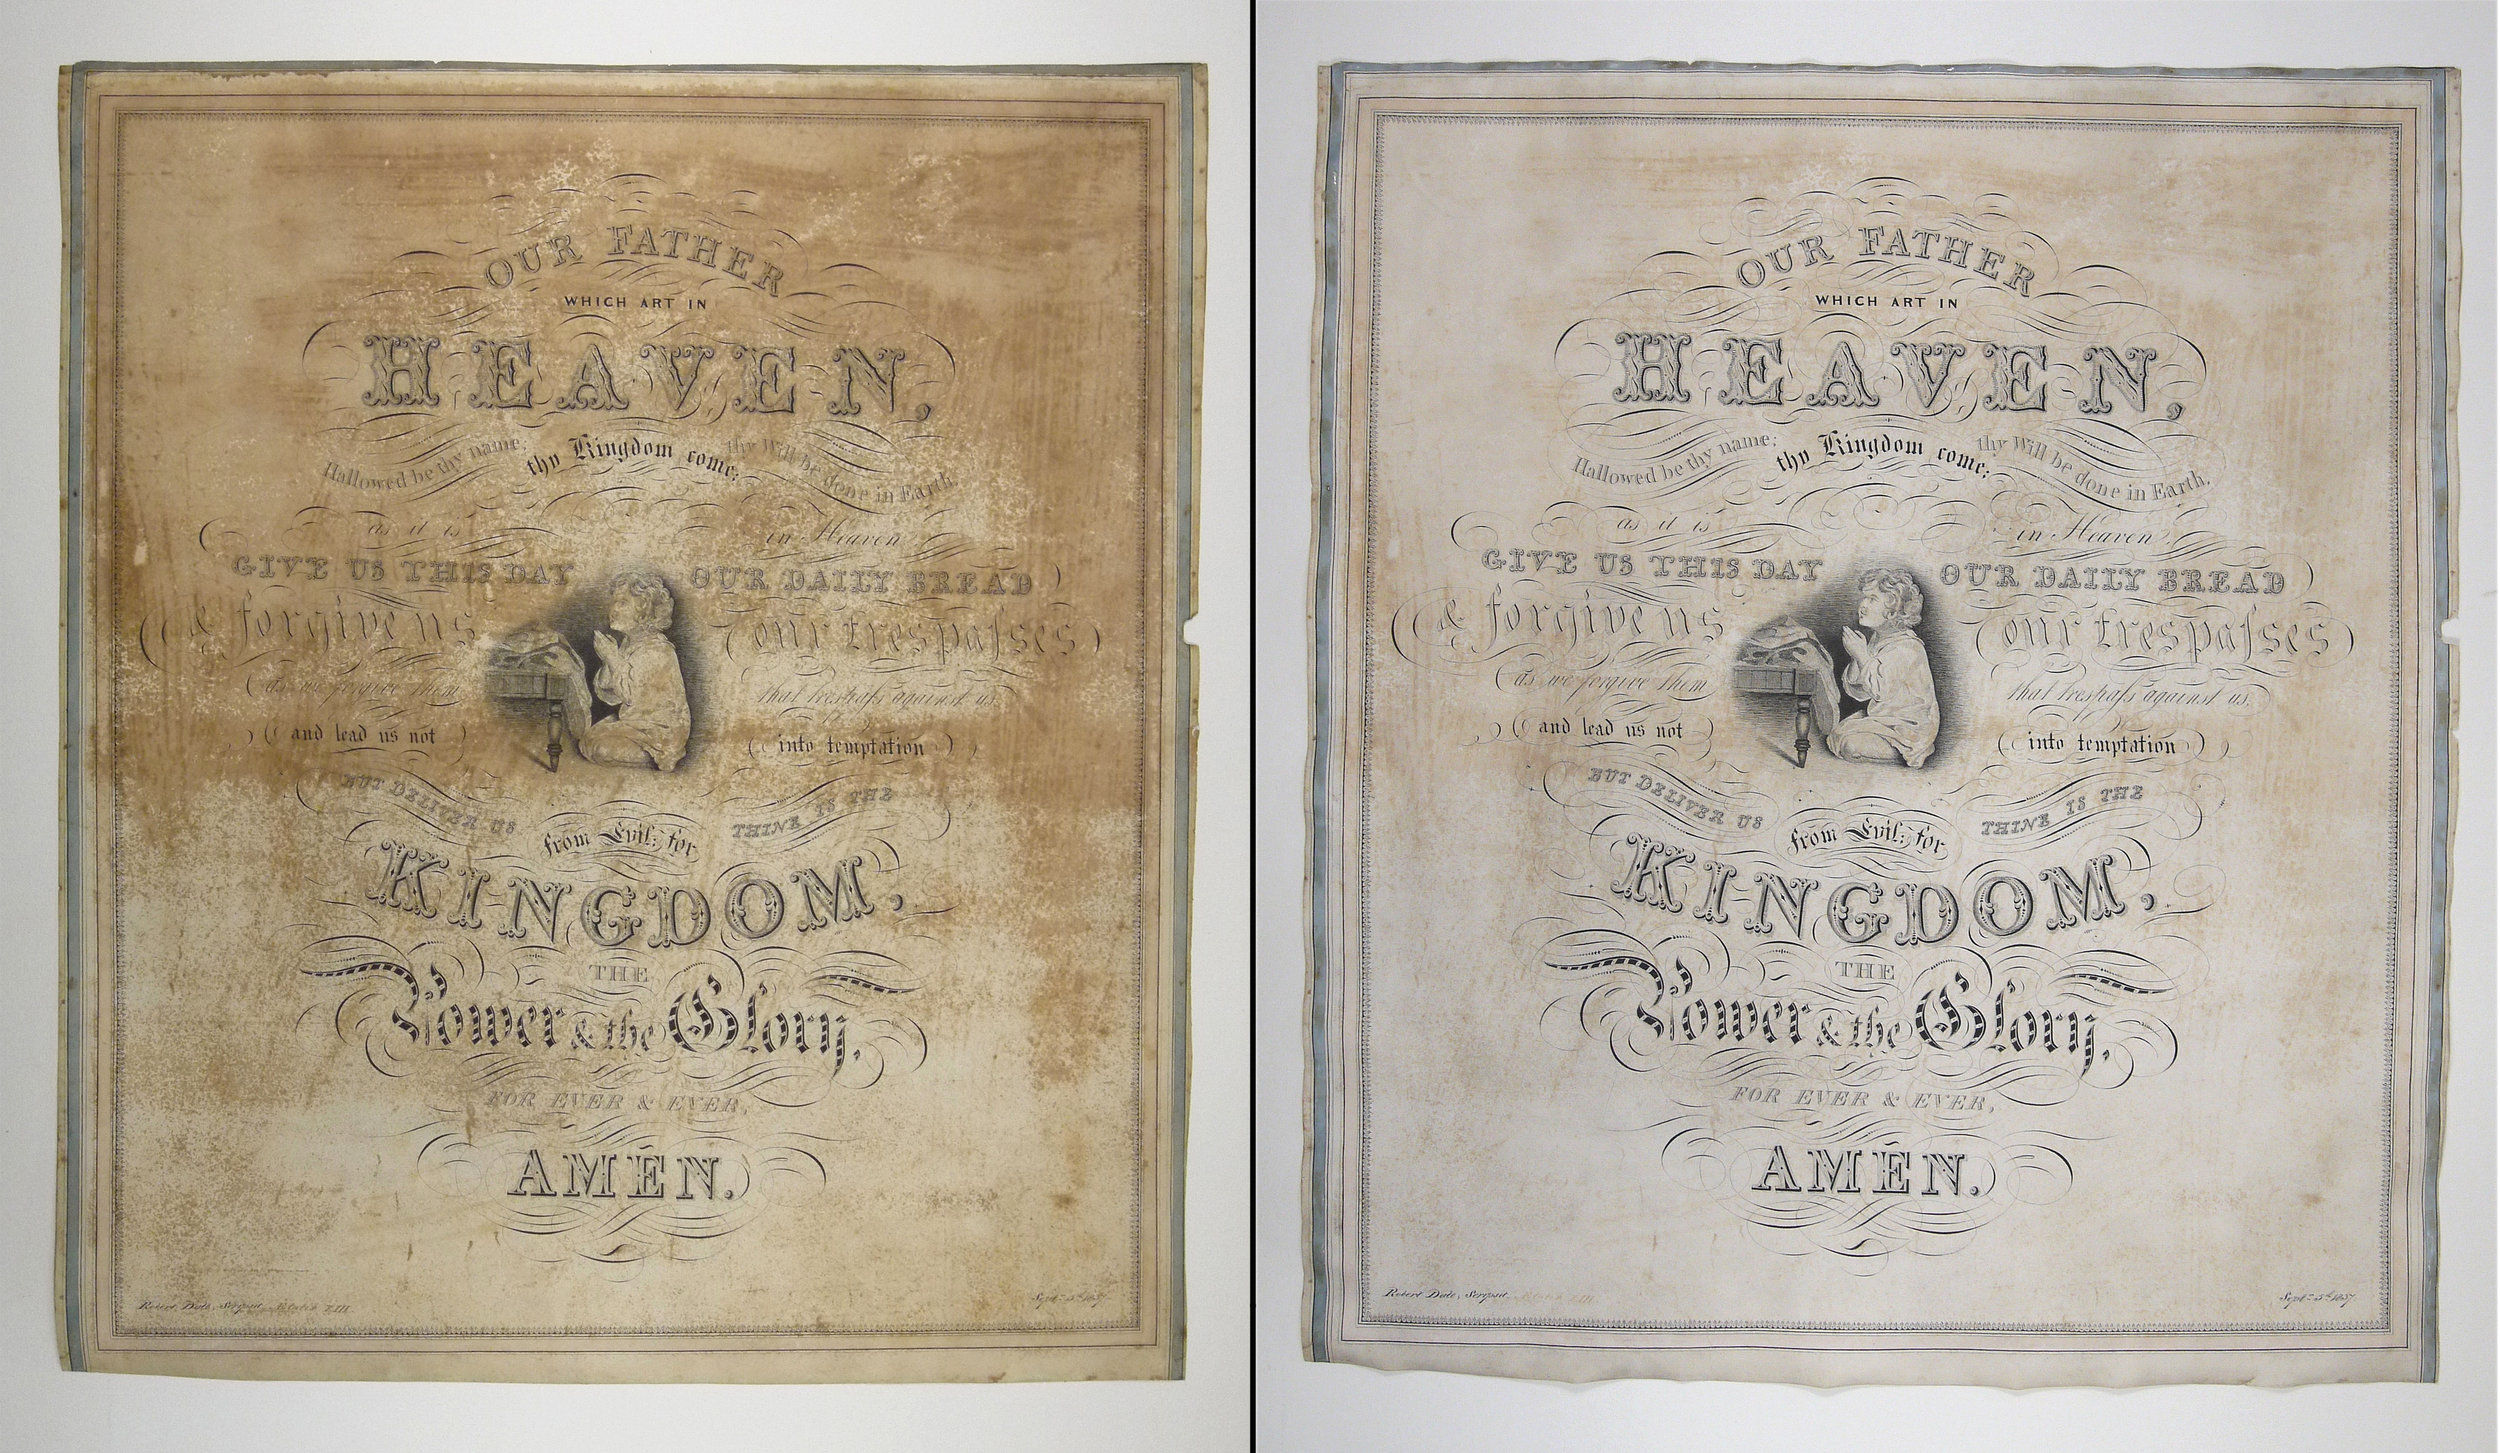 Lord's Prayer  drawing before and after conservation treatment.